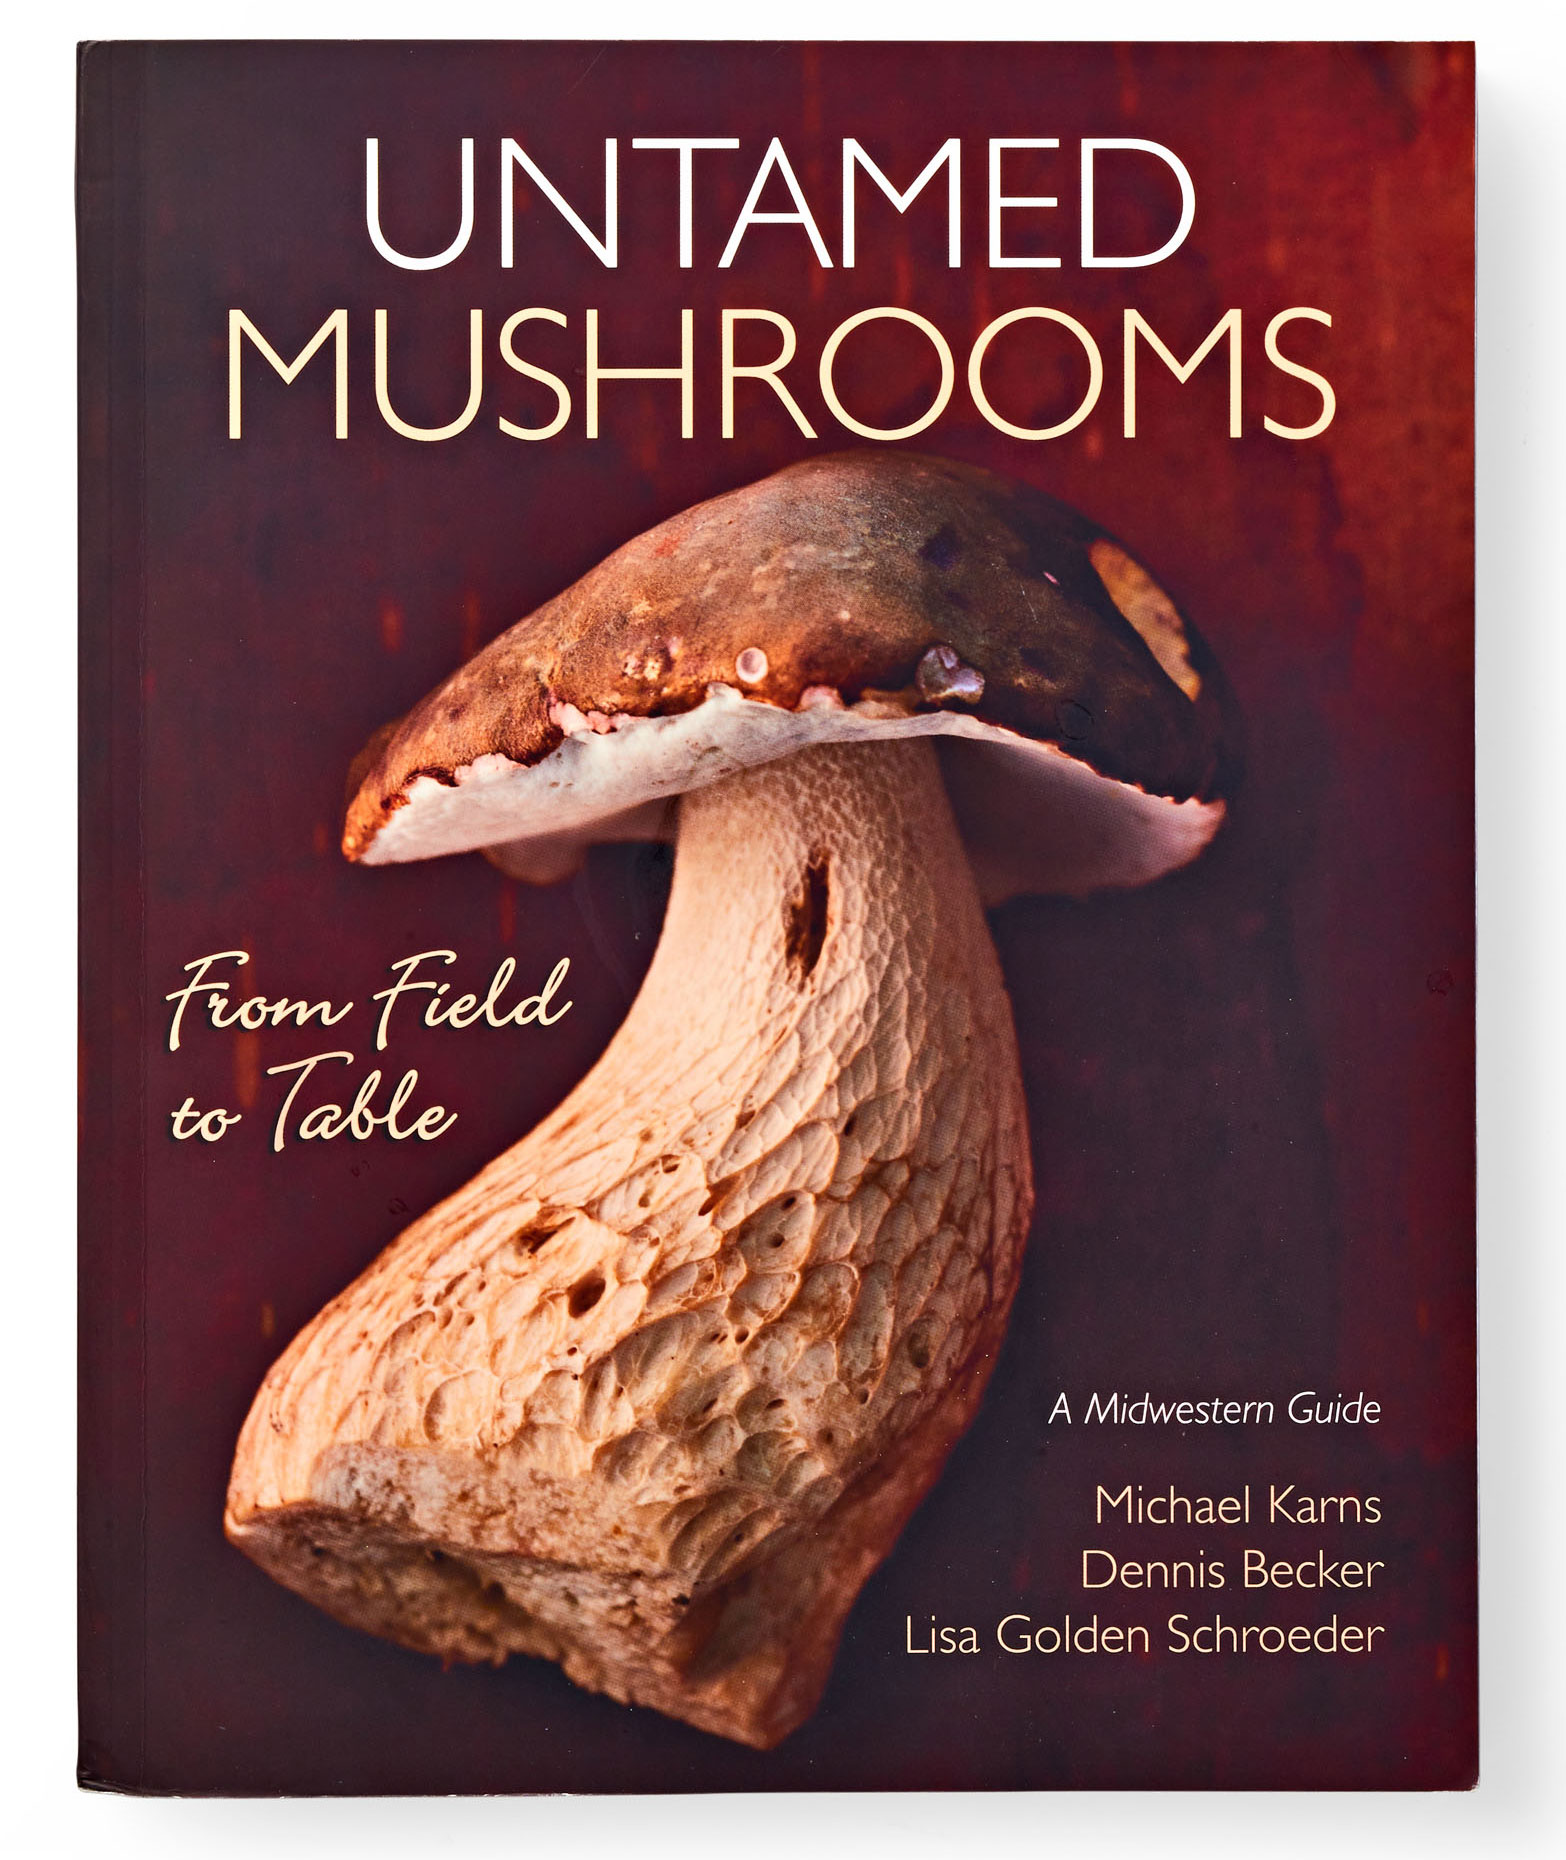 Untamed Mushrooms cookbook